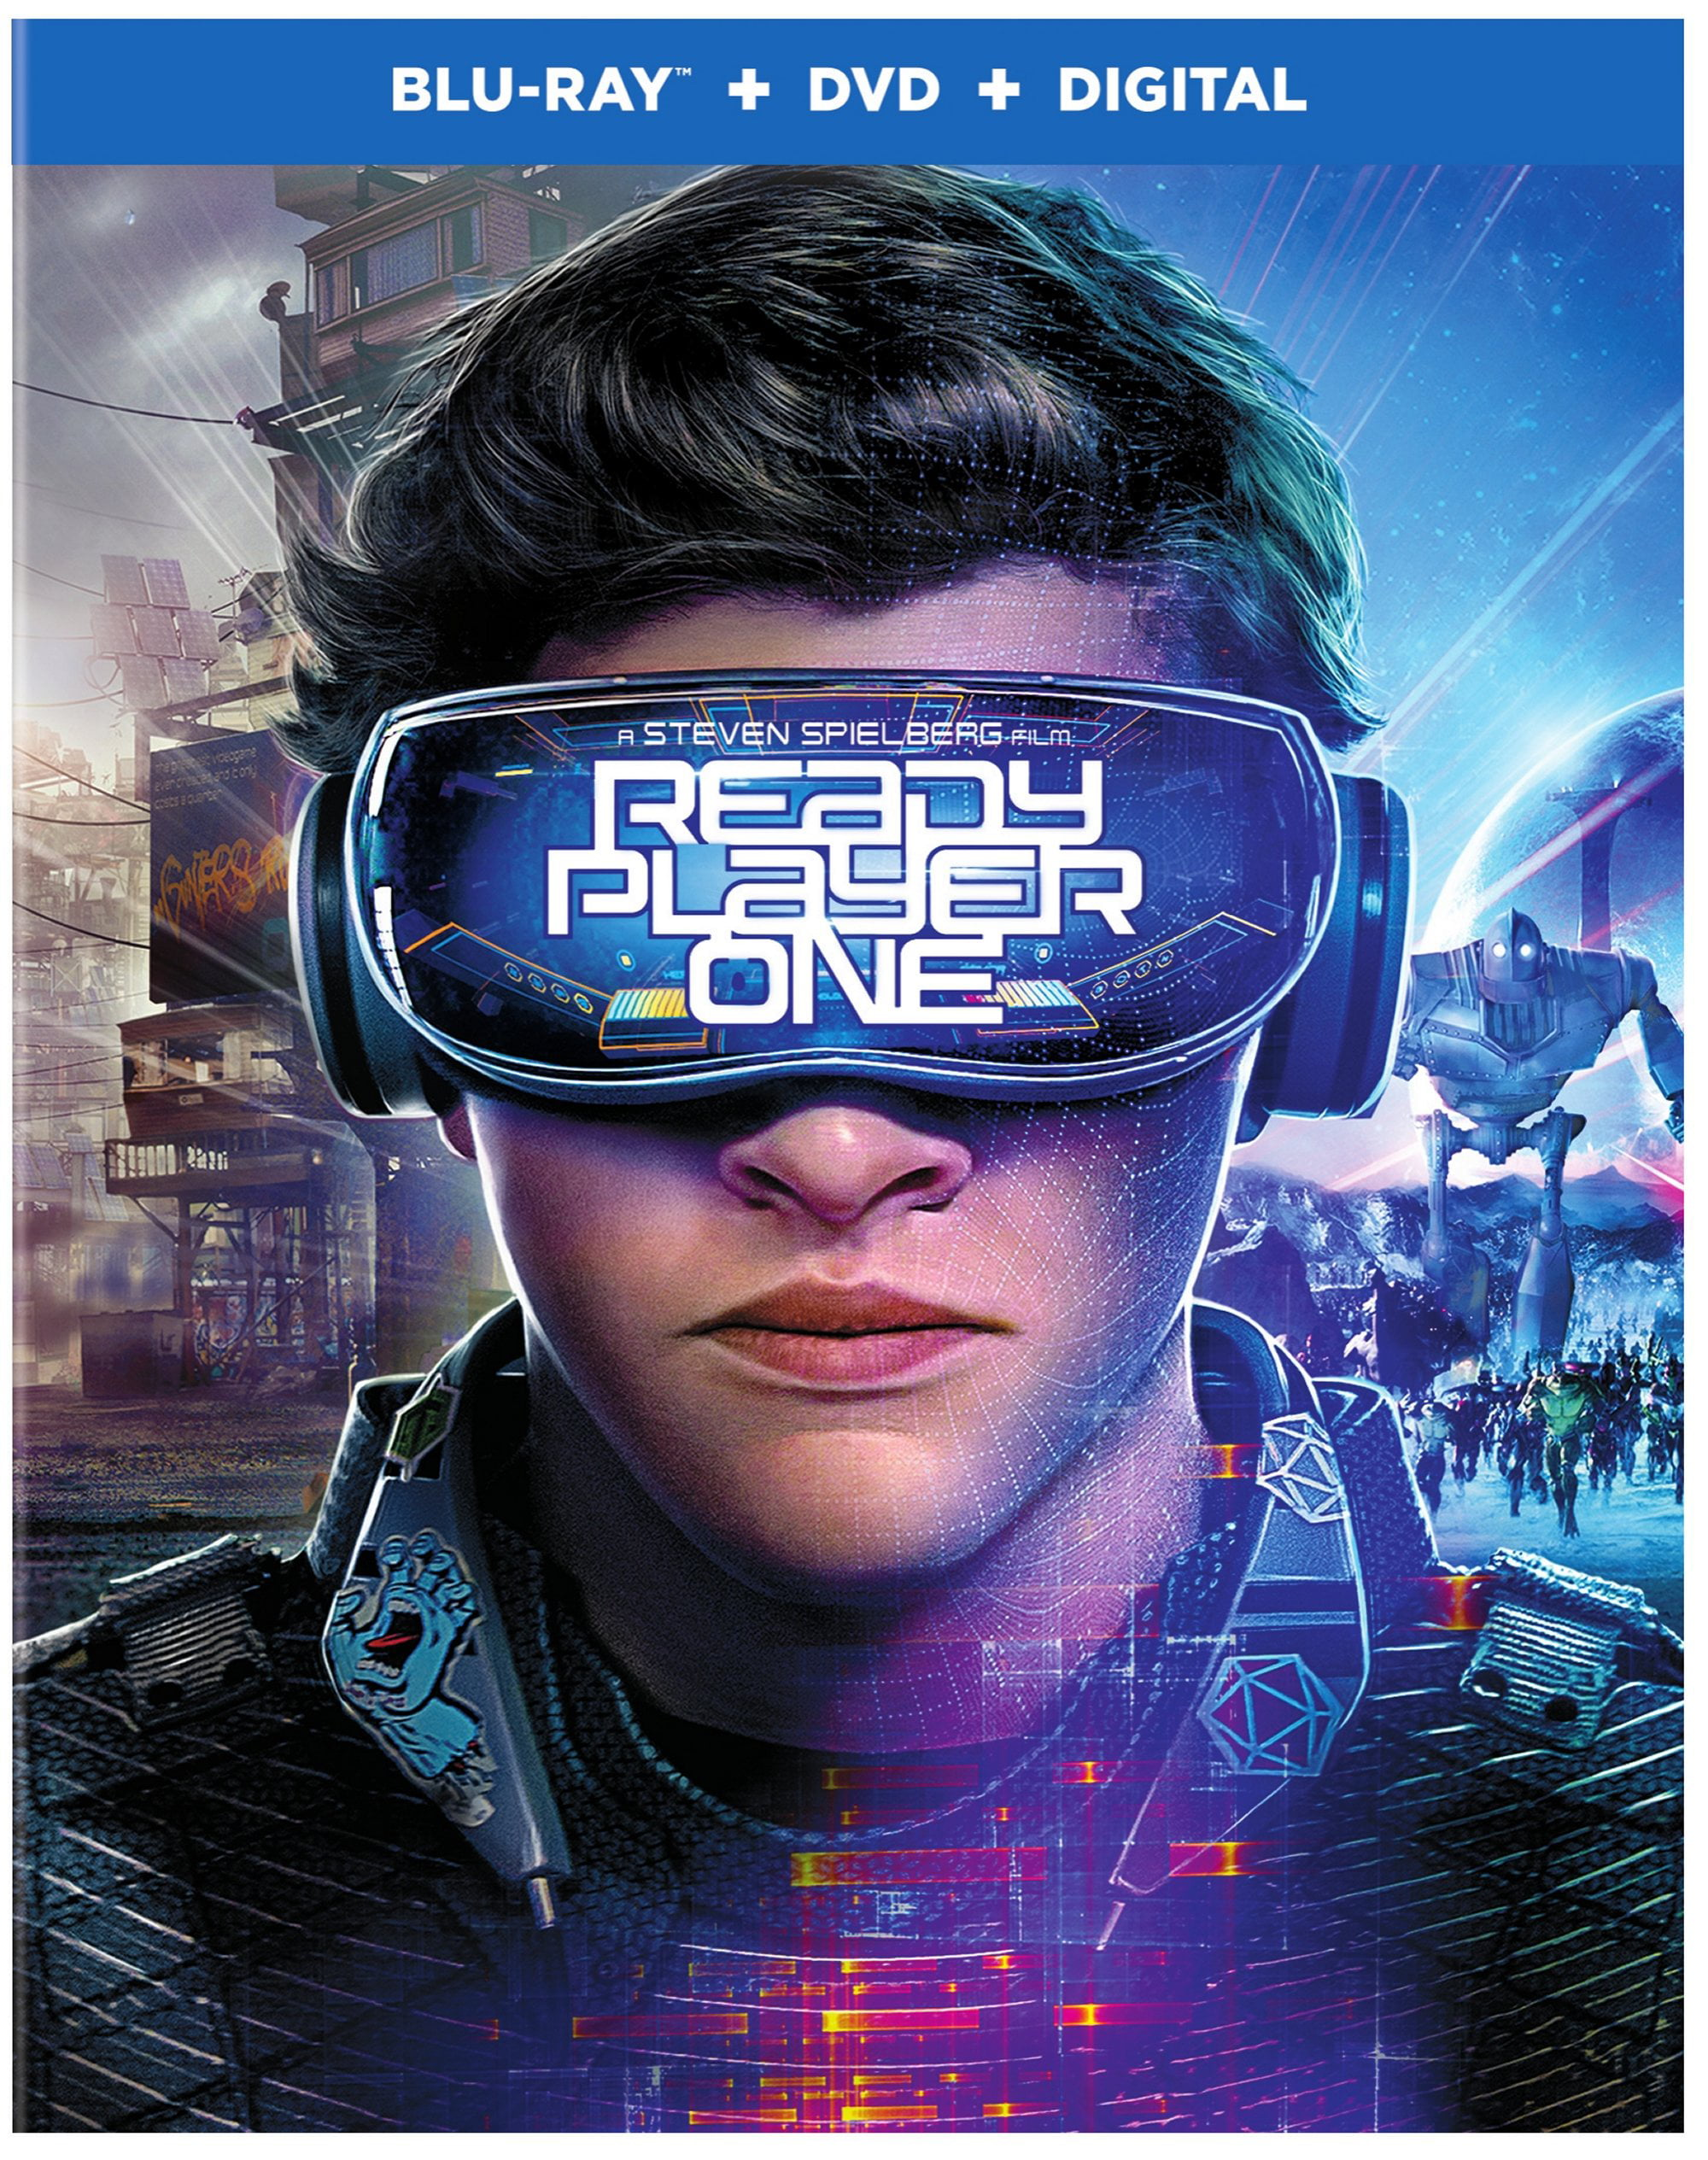 Ready Player One (Blu-ray + DVD + Digital) - Walmart.com